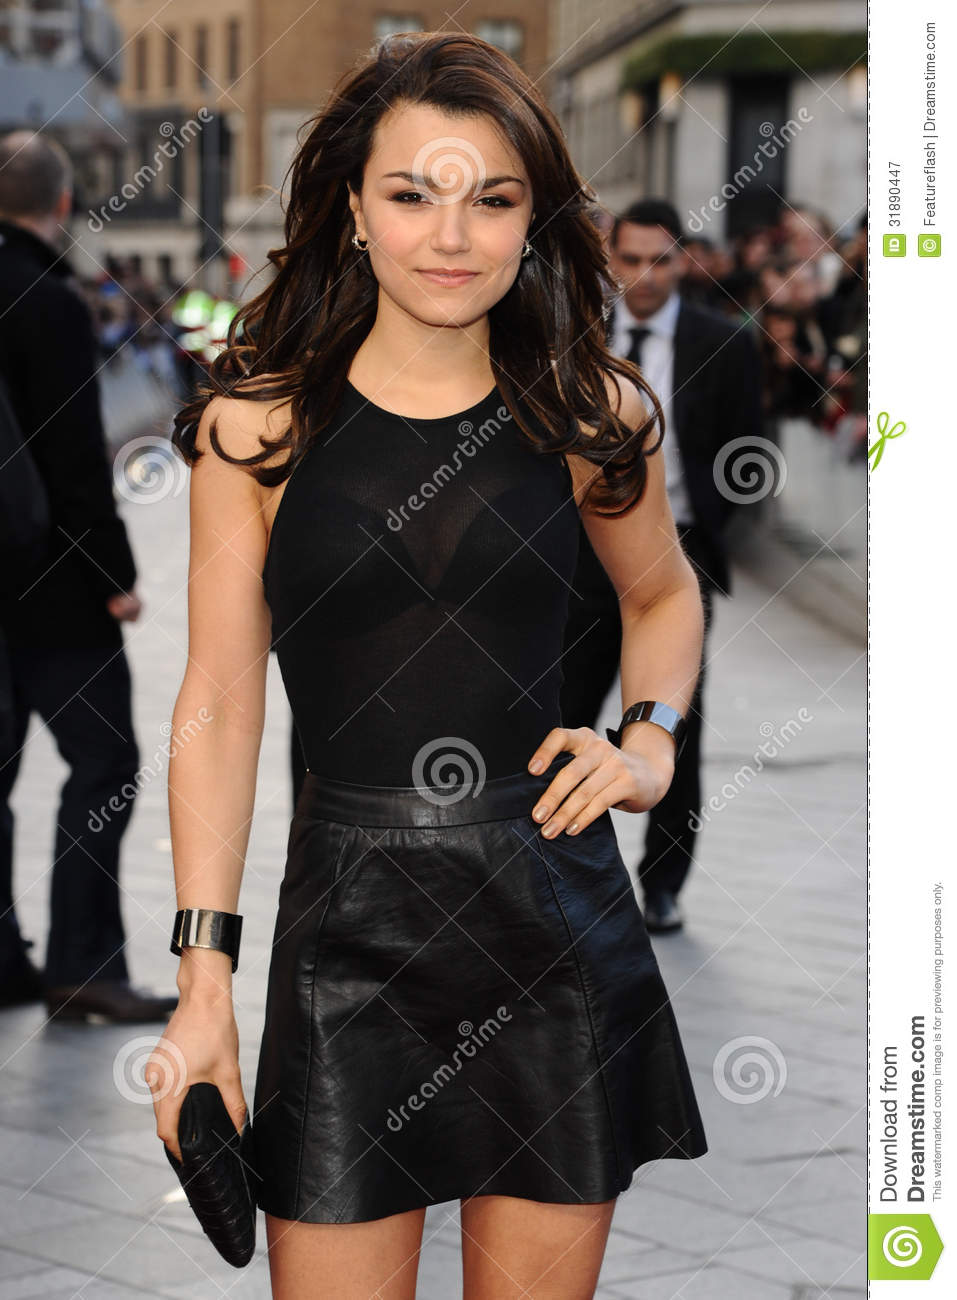 samantha barks instagramsamantha barks - on my own, samantha barks wiki, samantha barks gif, samantha barks listal, samantha barks stay, samantha barks wdw, samantha barks oliver bootleg, samantha barks instagram, samantha barks chicago, samantha barks icons, samantha barks ukraine, samantha barks twitter, samantha barks, саманта баркс, samantha barks les miserables, samantha barks dracula untold, samantha barks i'd do anything, samantha barks dracula, samantha barks tumblr, samantha barks amelie